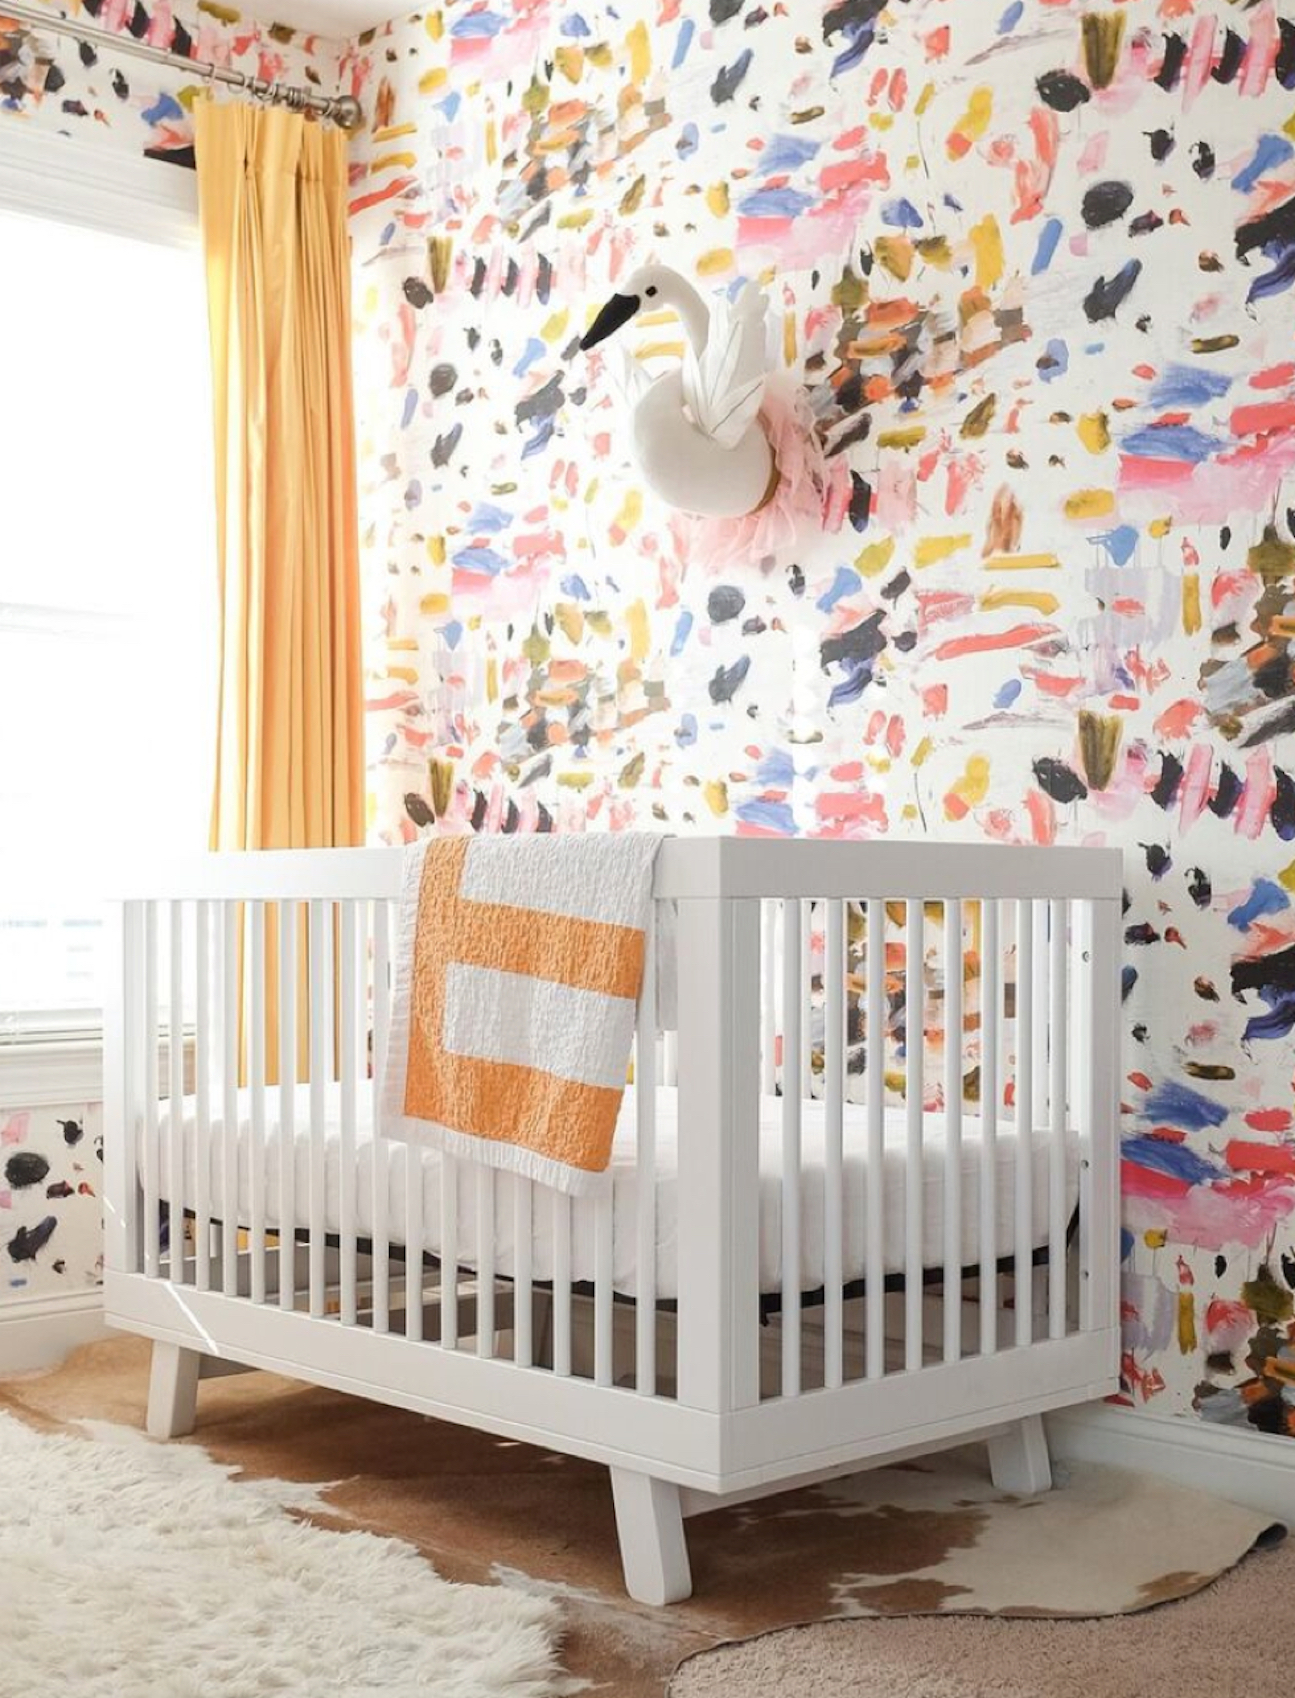 Stacey Blake's Brght and Colorful Nursery